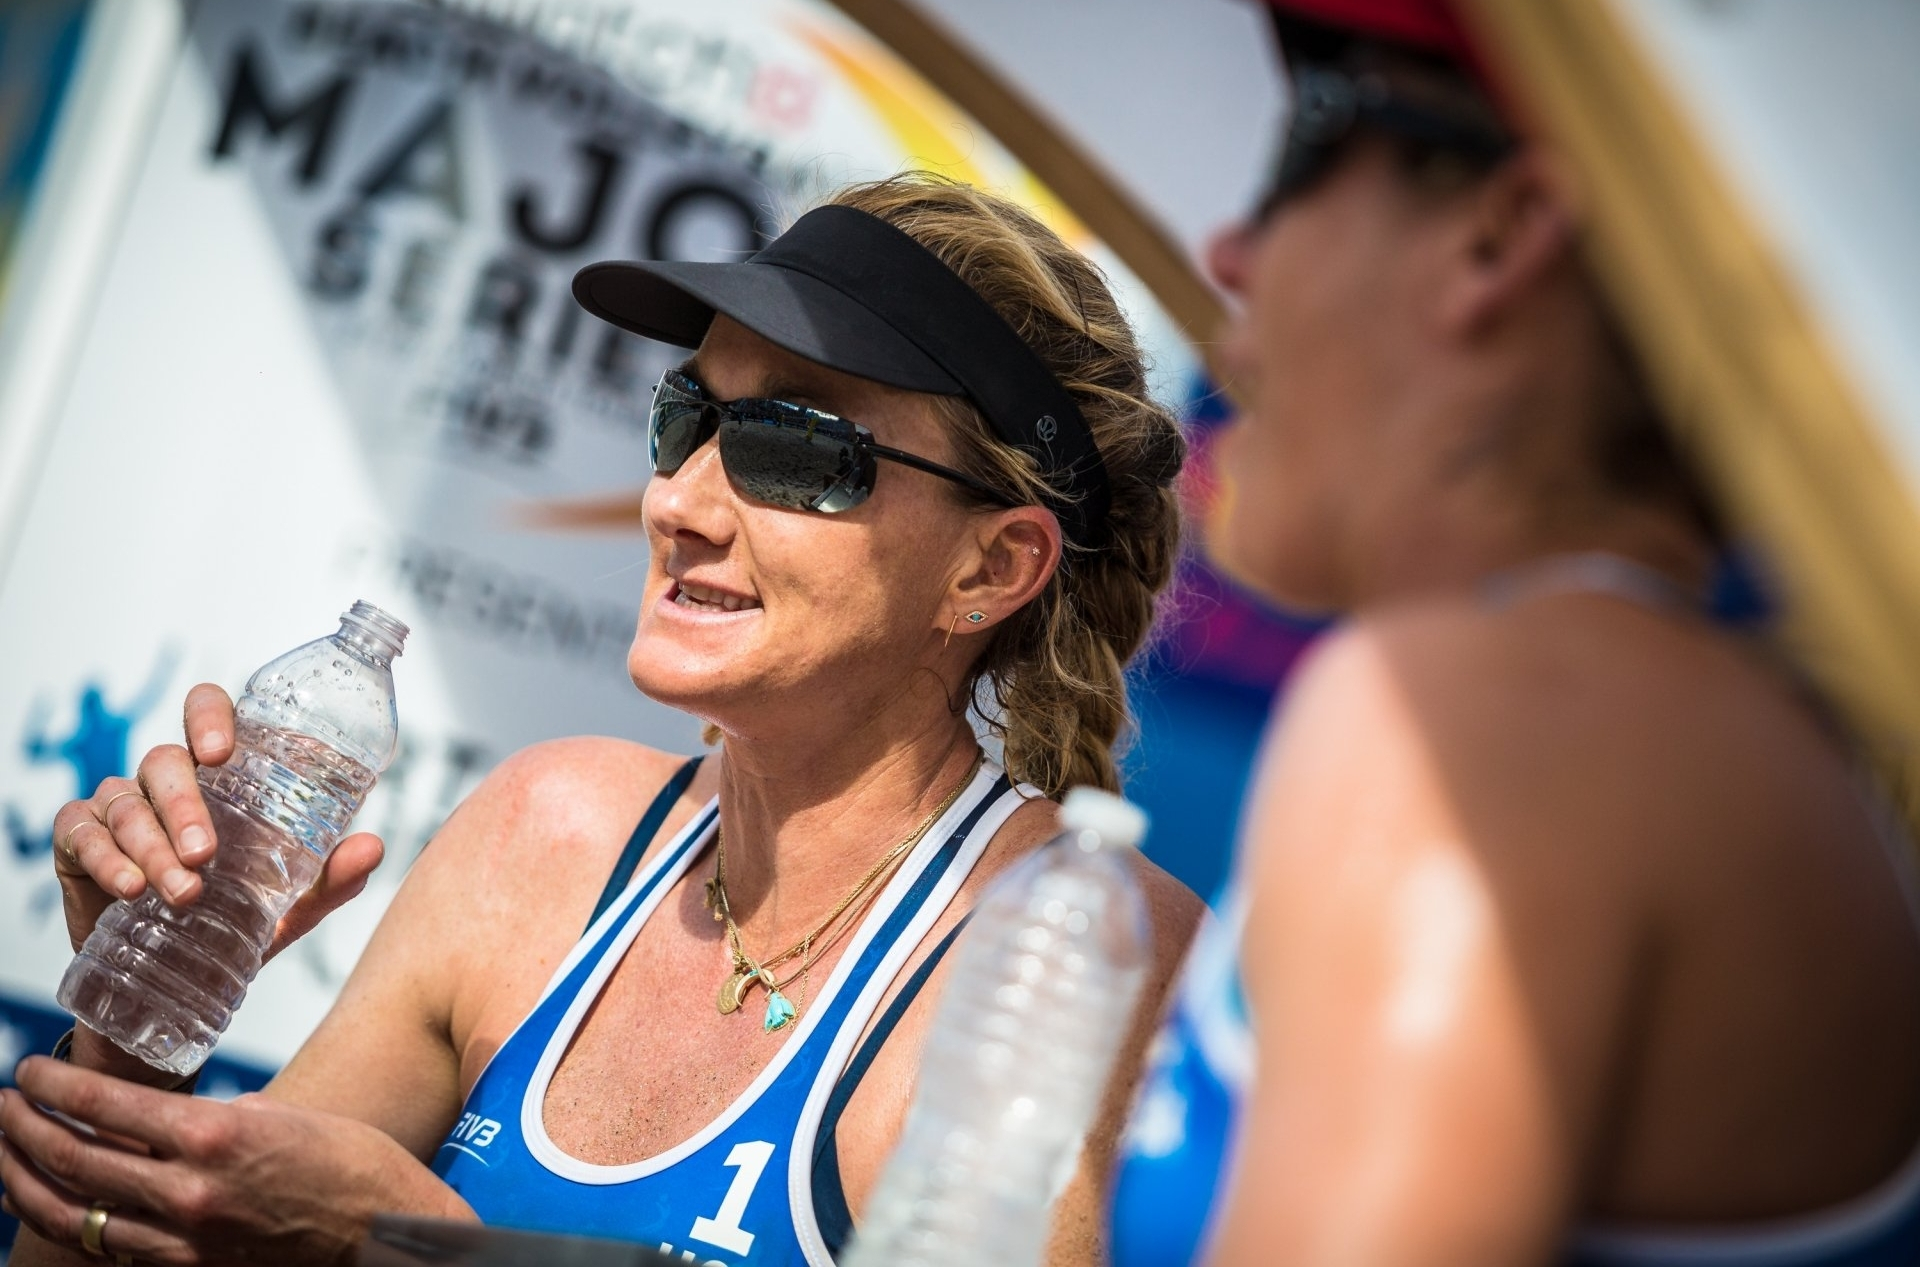 Kerri Walsh Jennings has won in Gstaad six times - but has yet to win a Major in the mountains